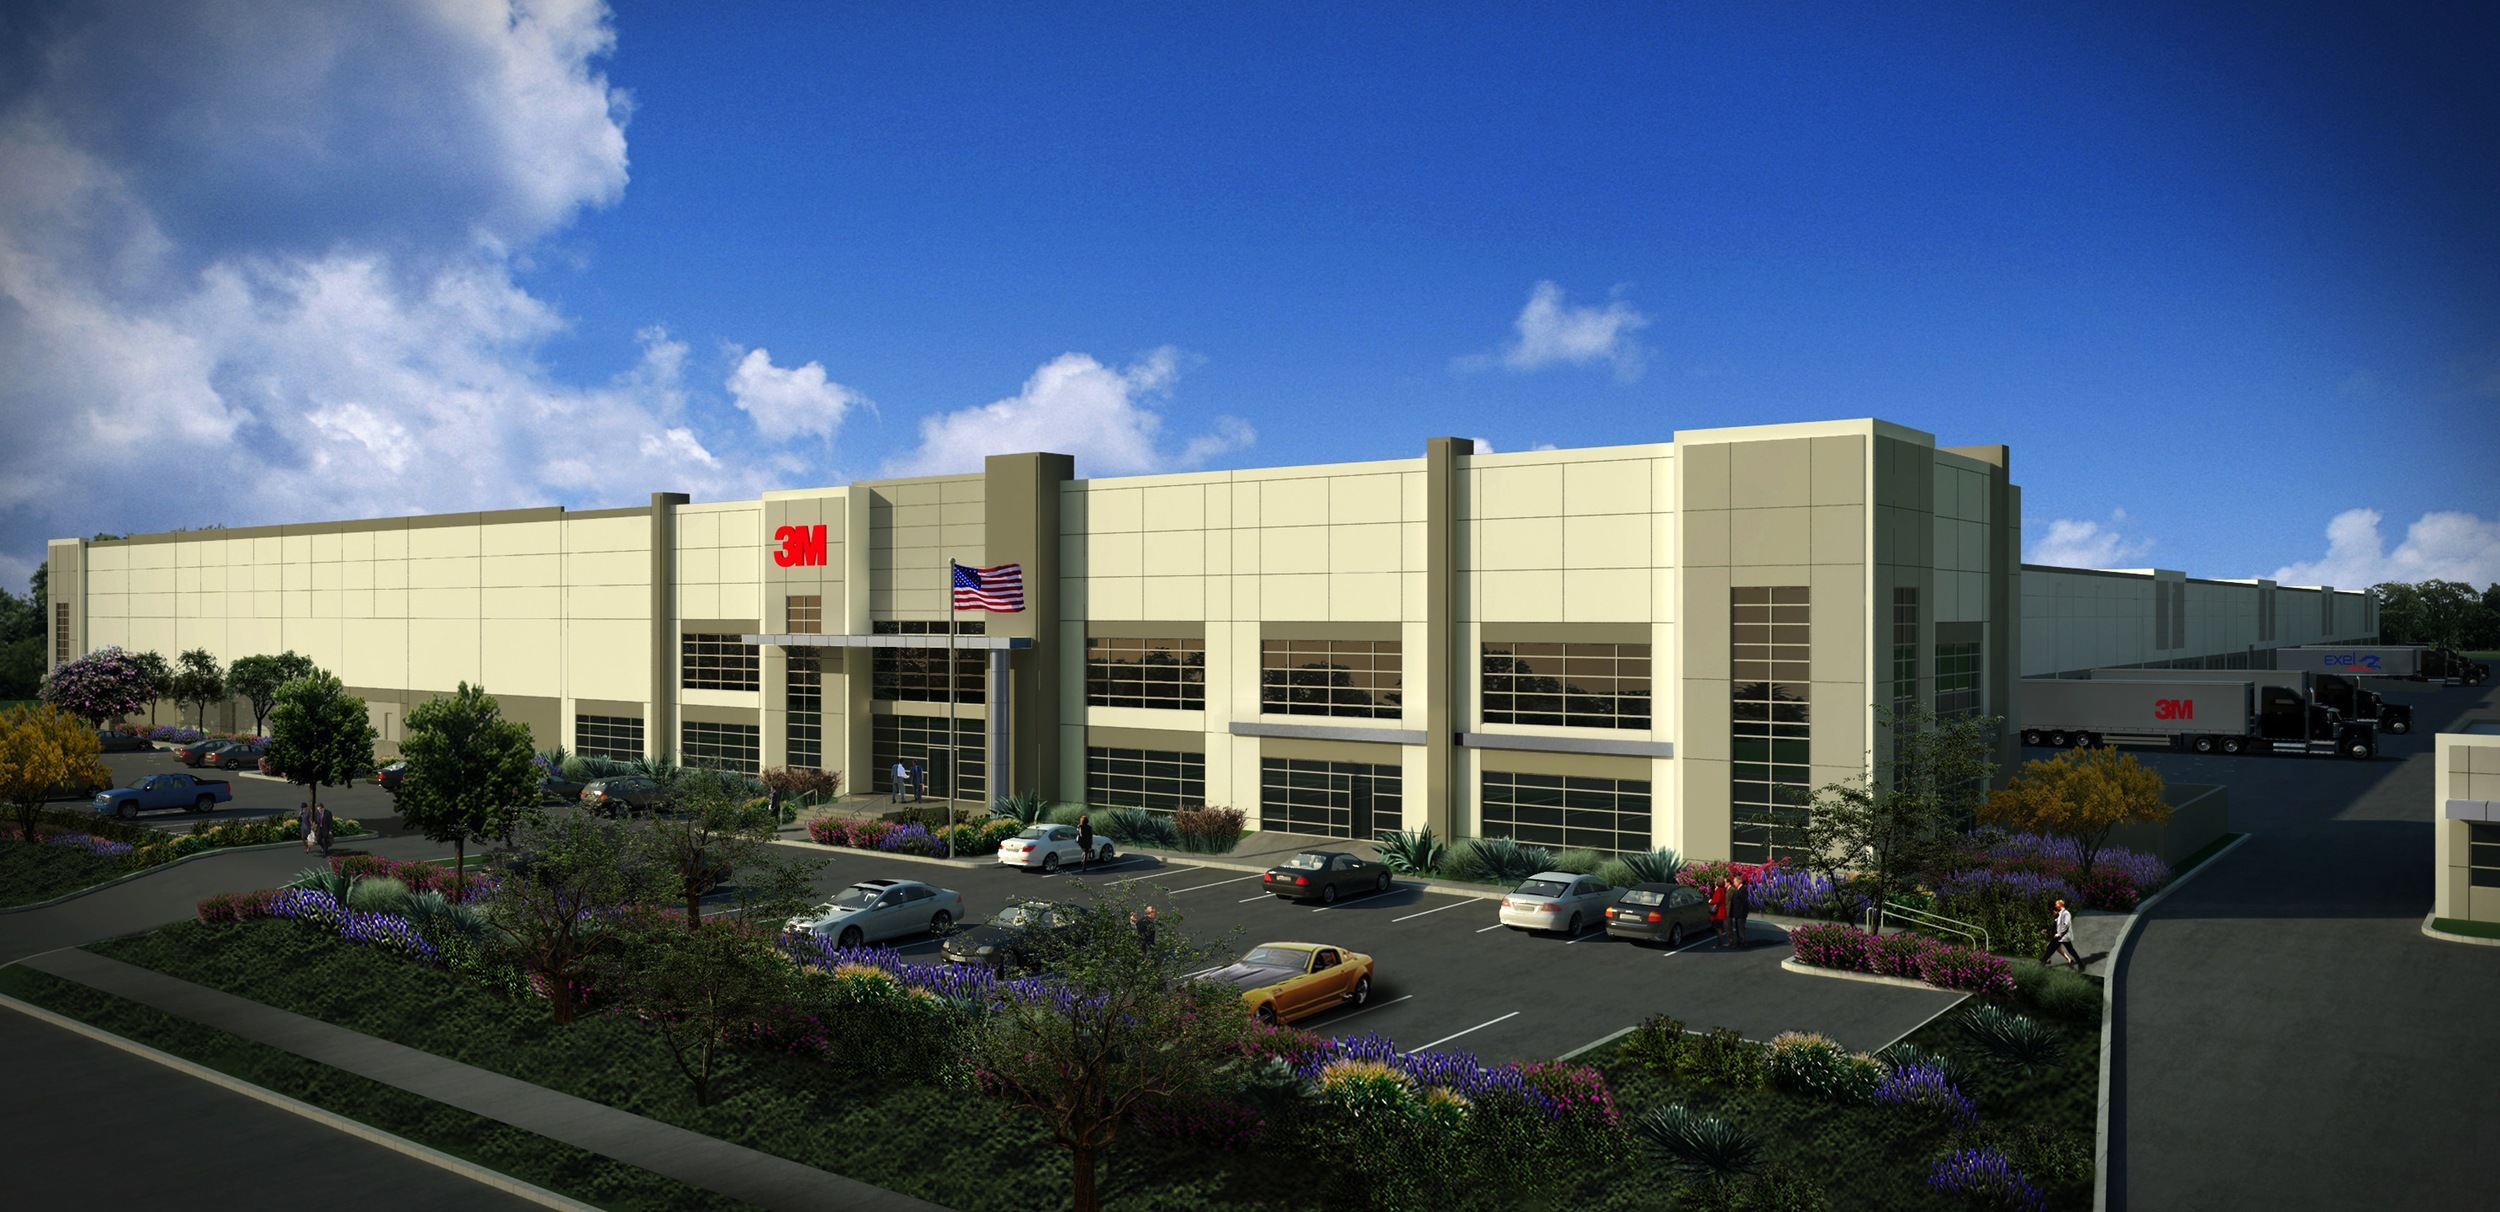 3m Western Distribution Center Rga Office Of Architectural